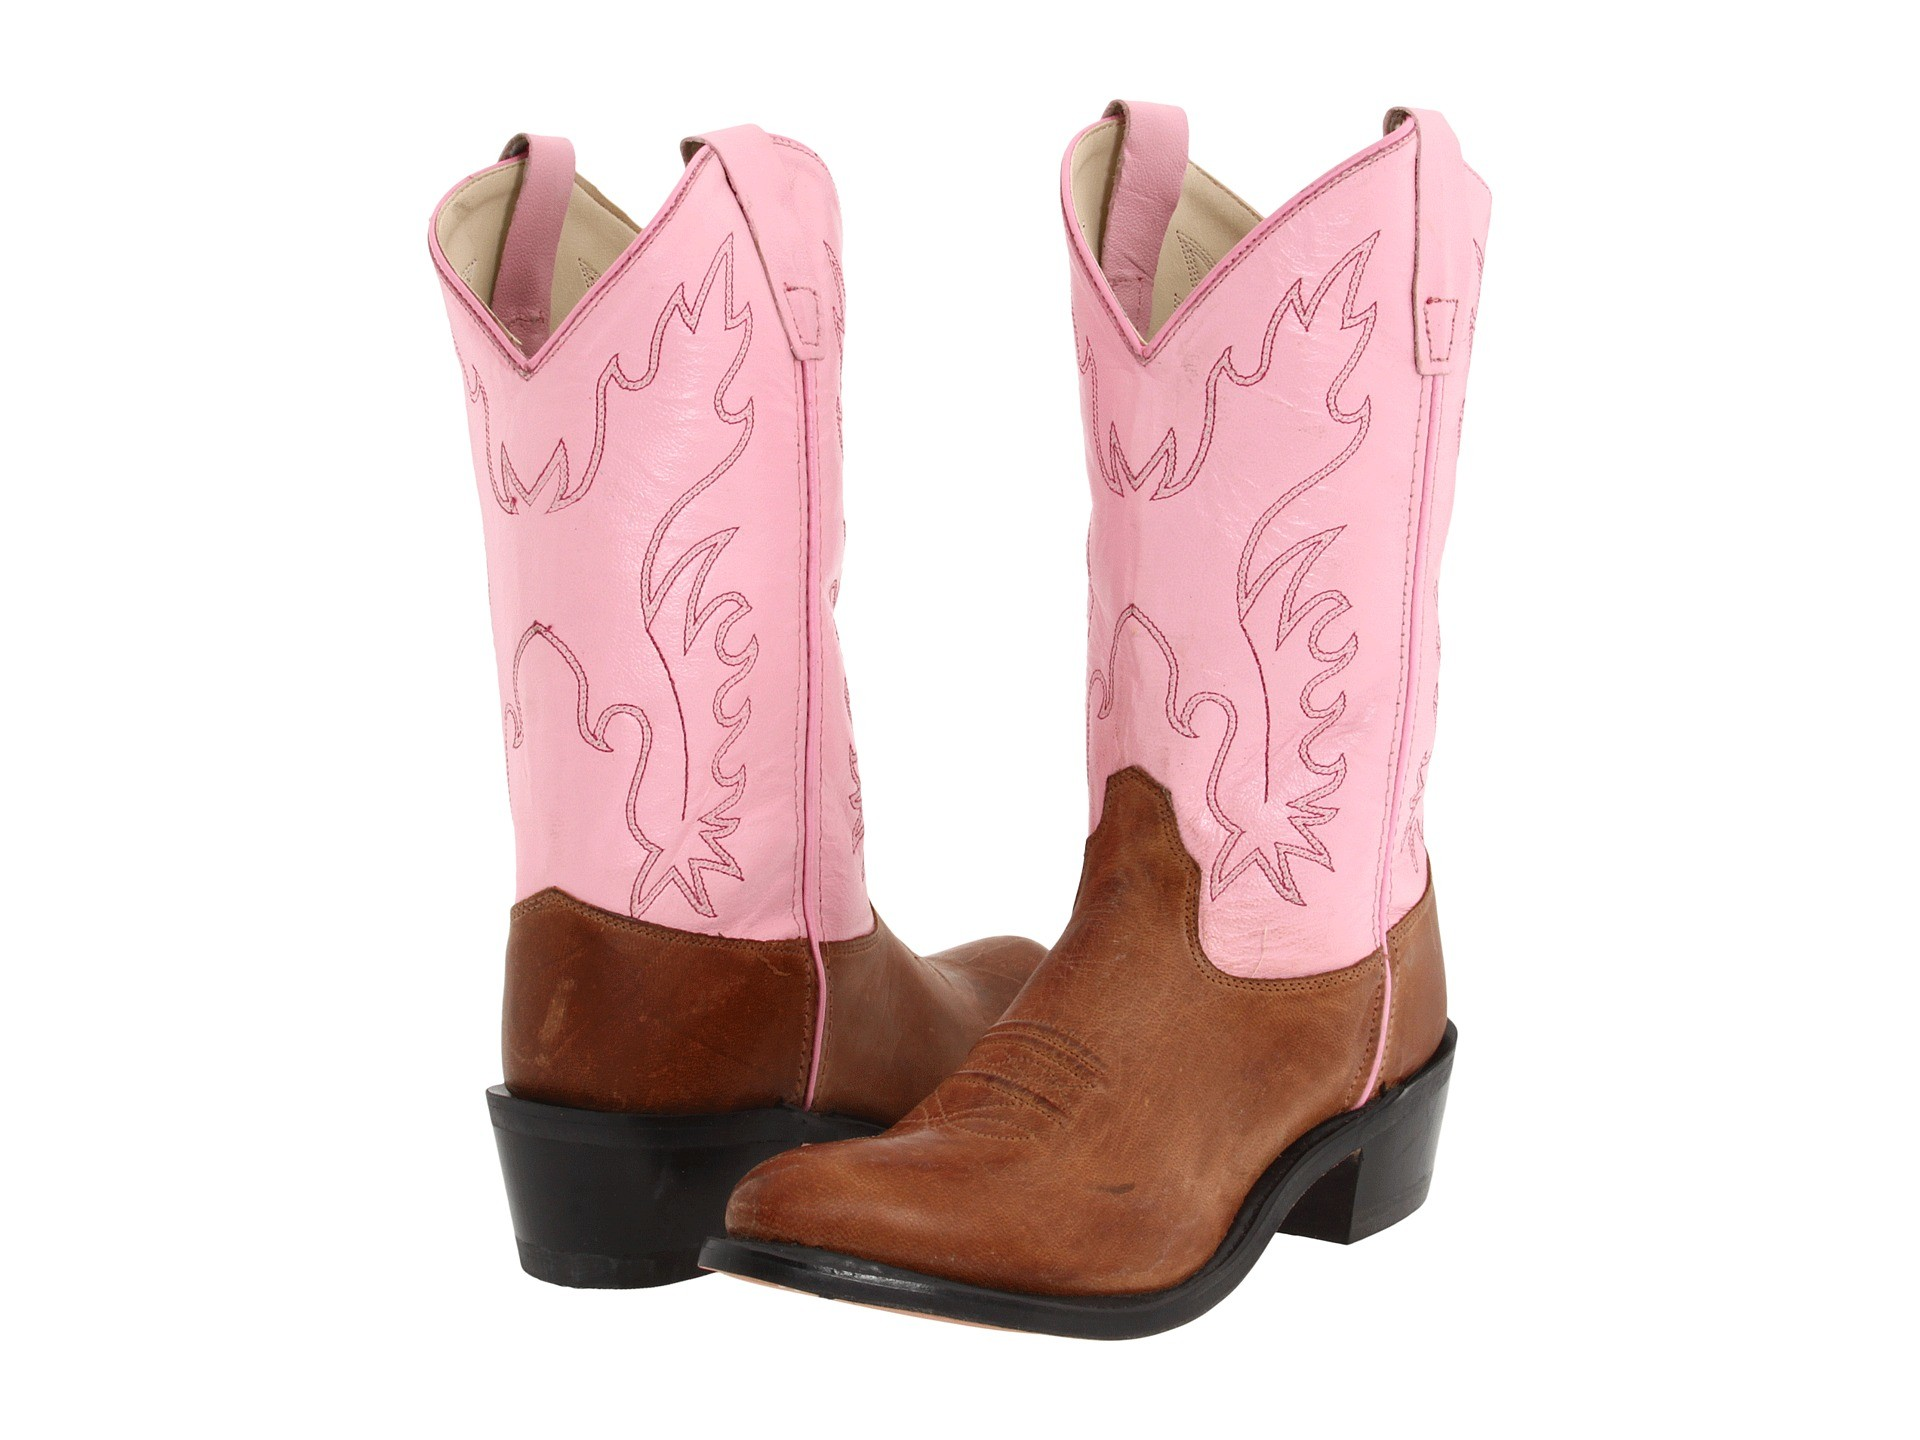 Res: 1920x1440, Kid's Old West Cowboy Boot - Pink